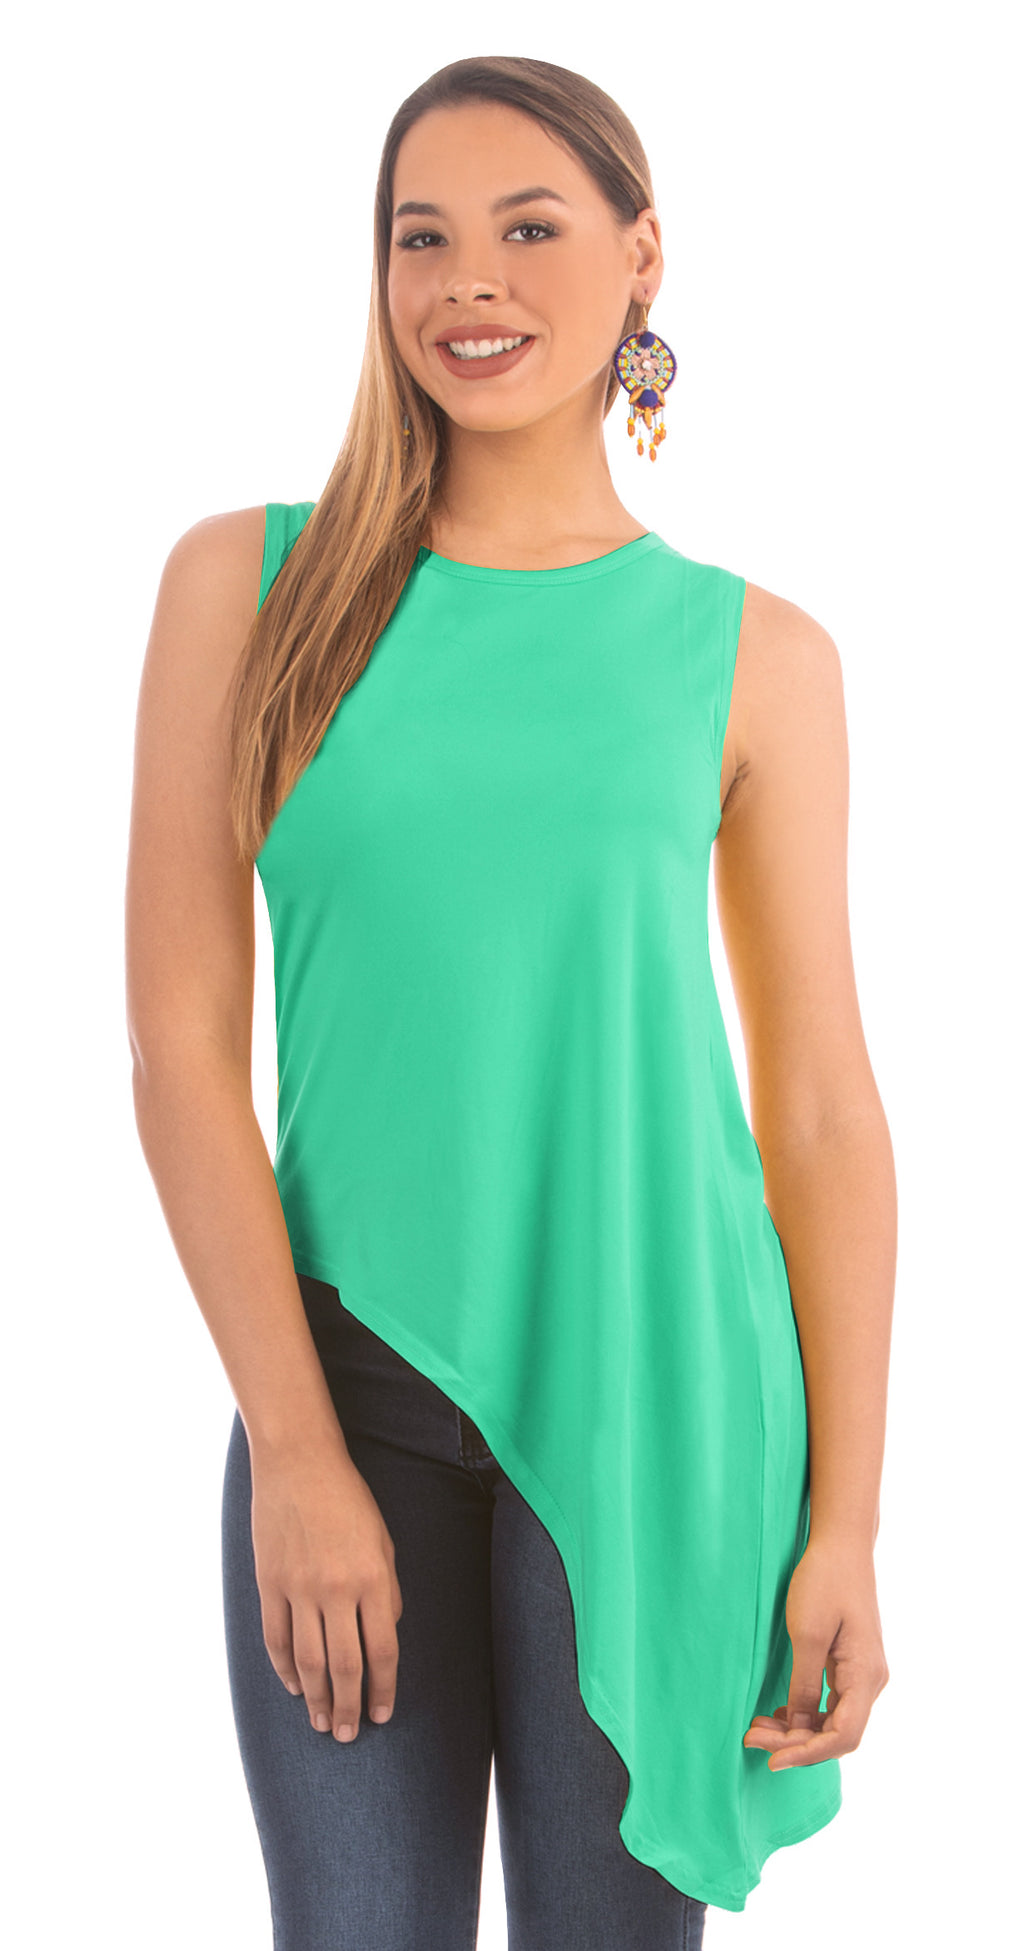 Ice Green Slanted Top | NR-312